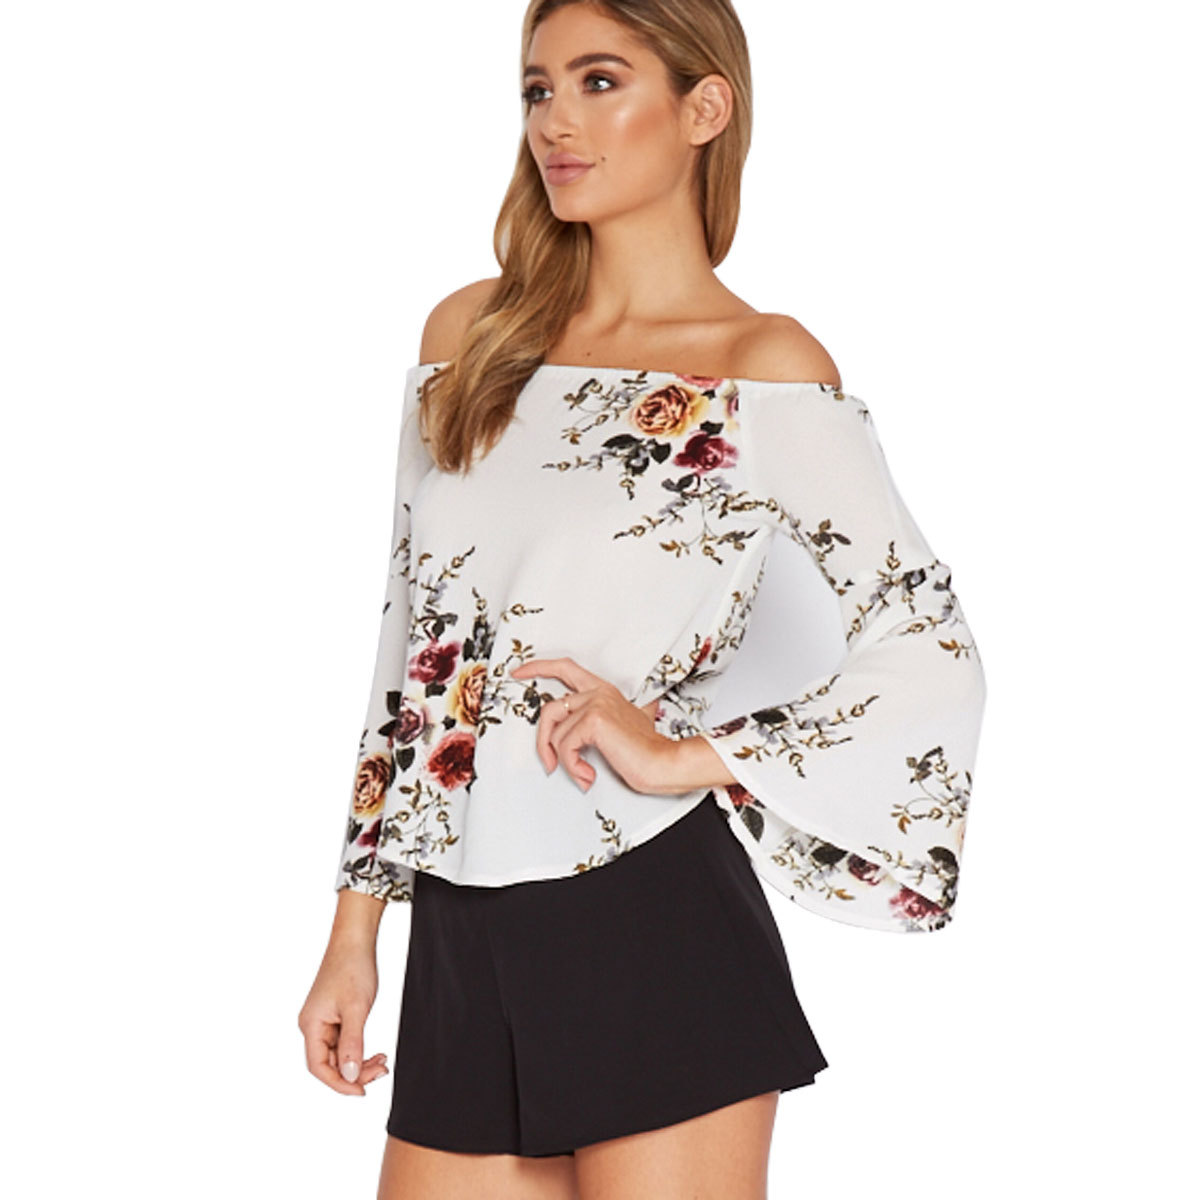 Strapless Top with Sleeves